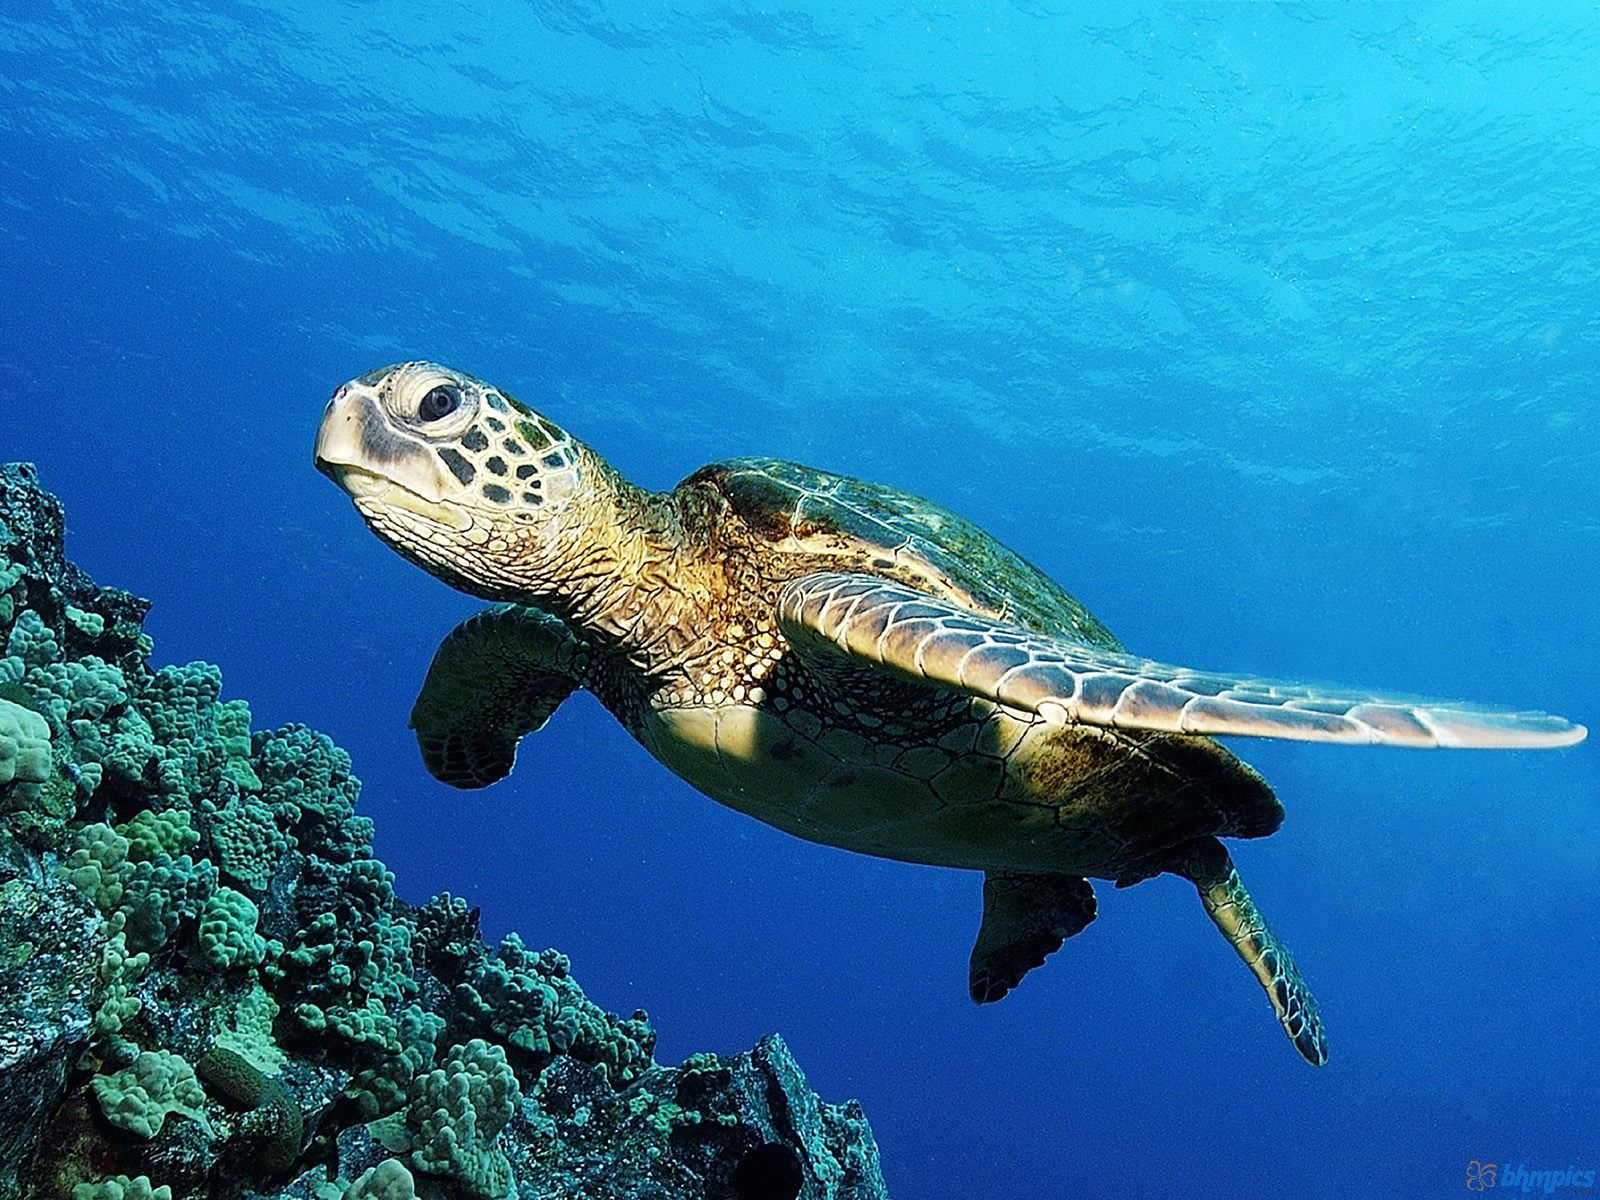 Sea Turtles Wallpaper Green Sea Turtle Wallpapers High Definition Quality Maui Reef